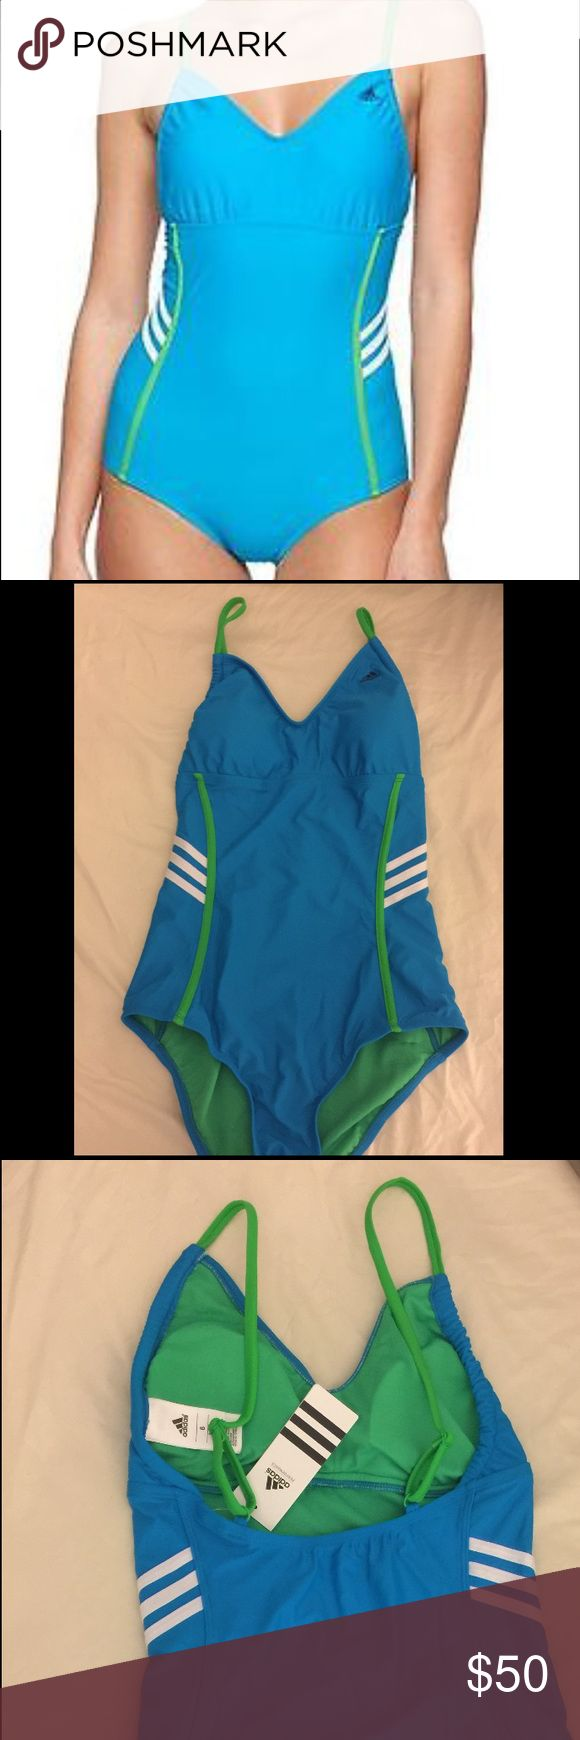 Adidas Classic Swimsuit 3-stripe accents on sides One-piece swimsuit Allover colorblock trim details Classic 3-stripe accents on sides V-neck Adjustable shoulder straps Logo detail on left chest Moderate back coverage Pull-on style Lined Material: 82% Nylon 18% ElastaneApprox. measurements (size 6): shoulder to hem 26″Care: Hand wash coldOrigin: Made in USAFit: This brand runs true to size. To ensure the best fit, we suggest consulting the size chart. Adidas Swim One Pieces